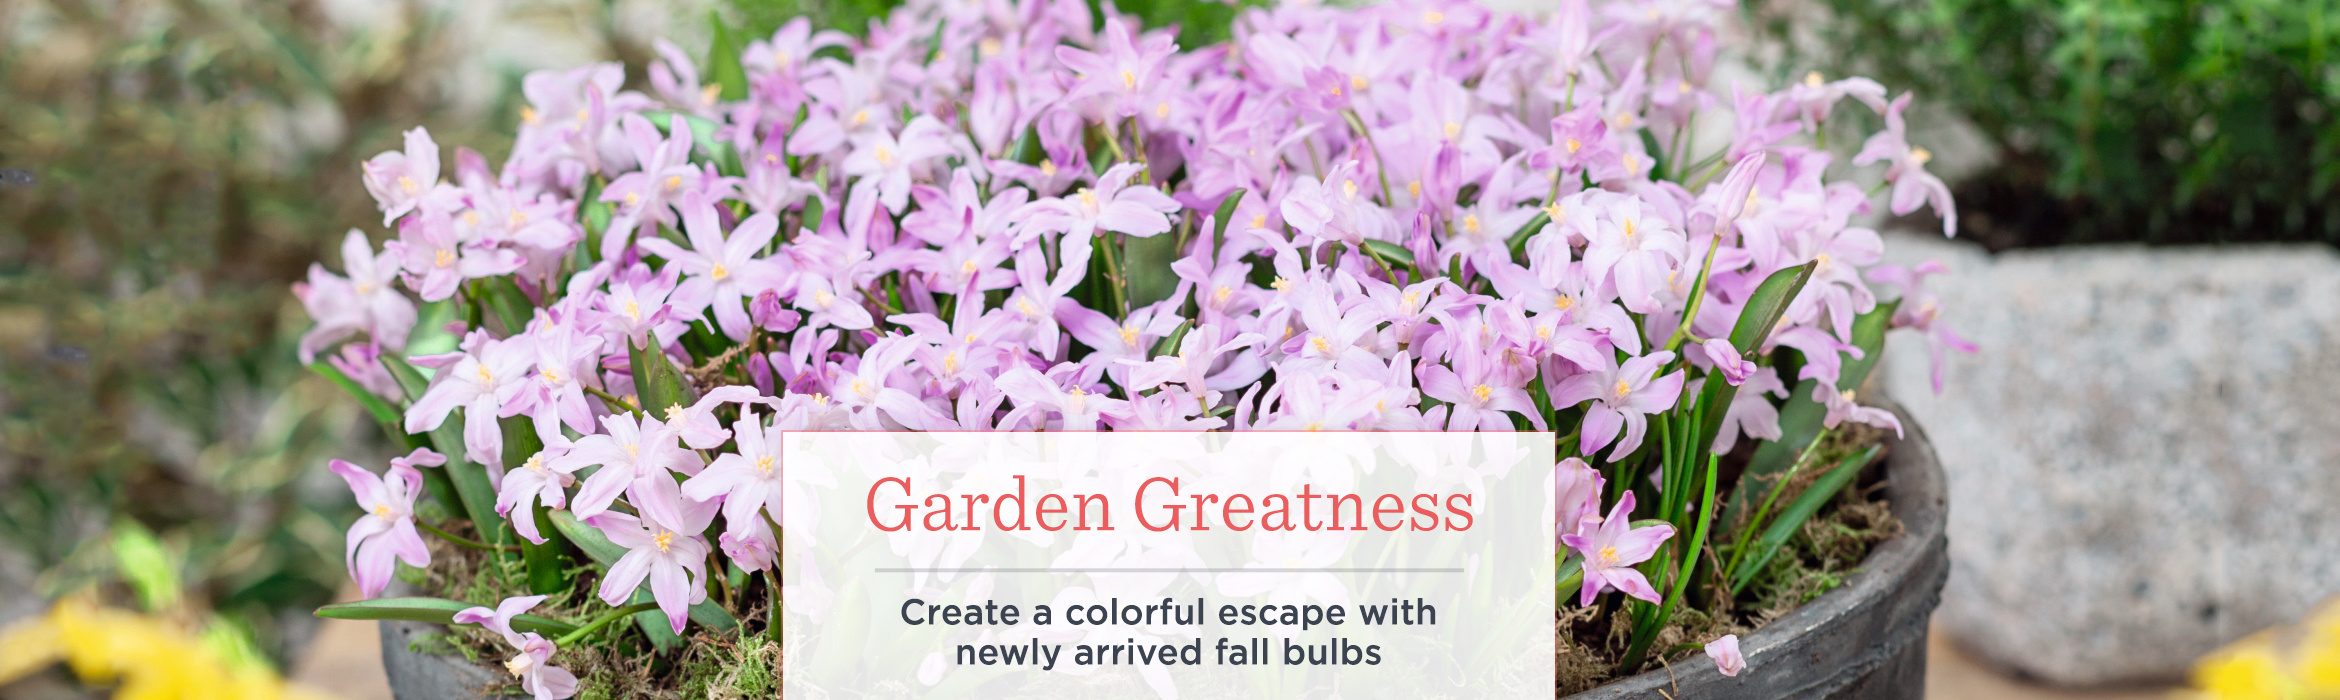 Garden Greatness  Create a colorful escape with newly arrived fall bulbs